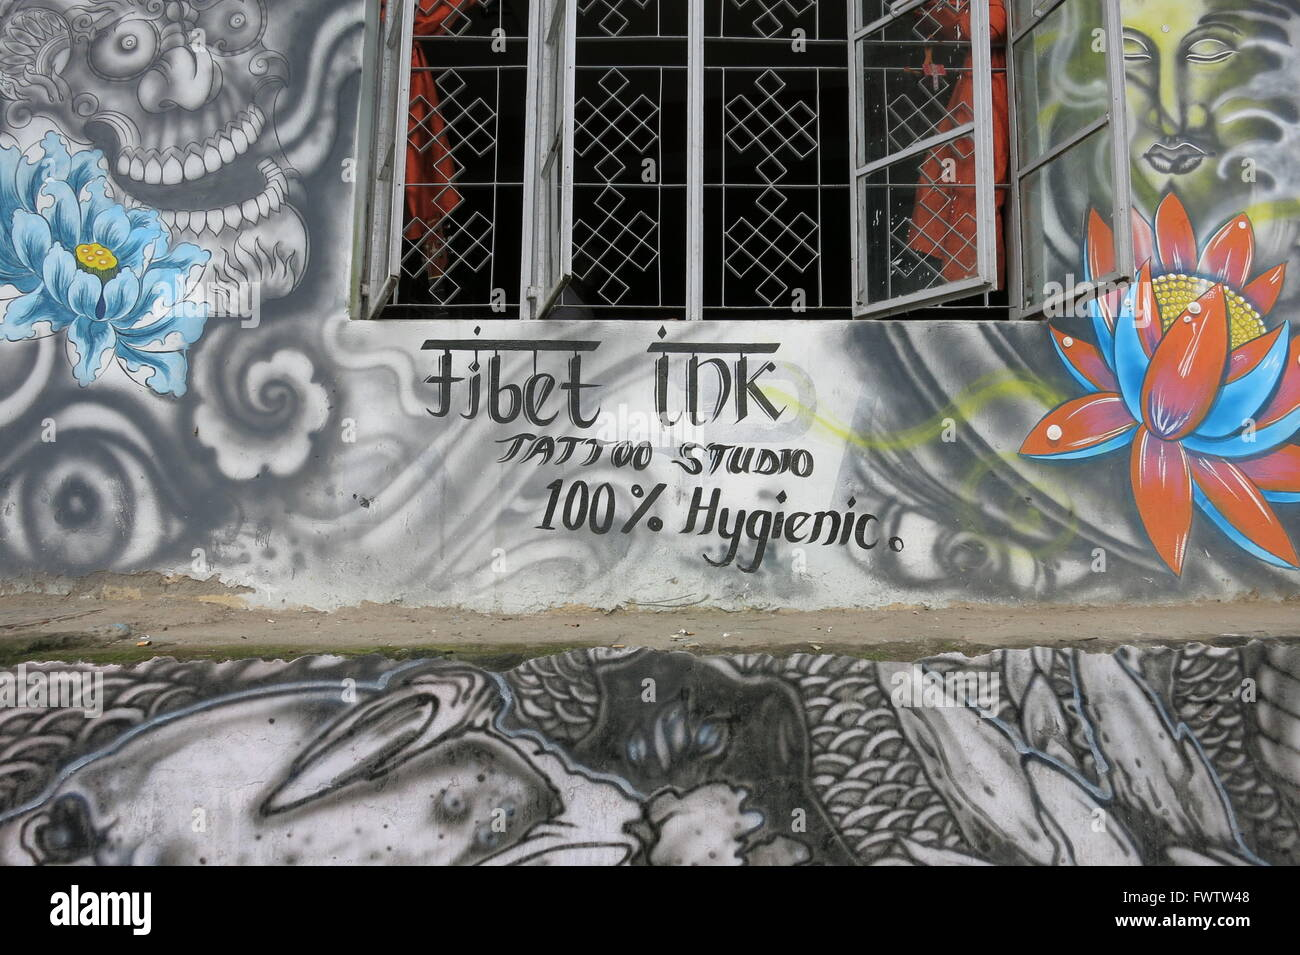 'Tibet TDK Tattoo Studio 100% Hygienic' hand painted sign or advertising on wall with graffiti artwork illustrating - Stock Image